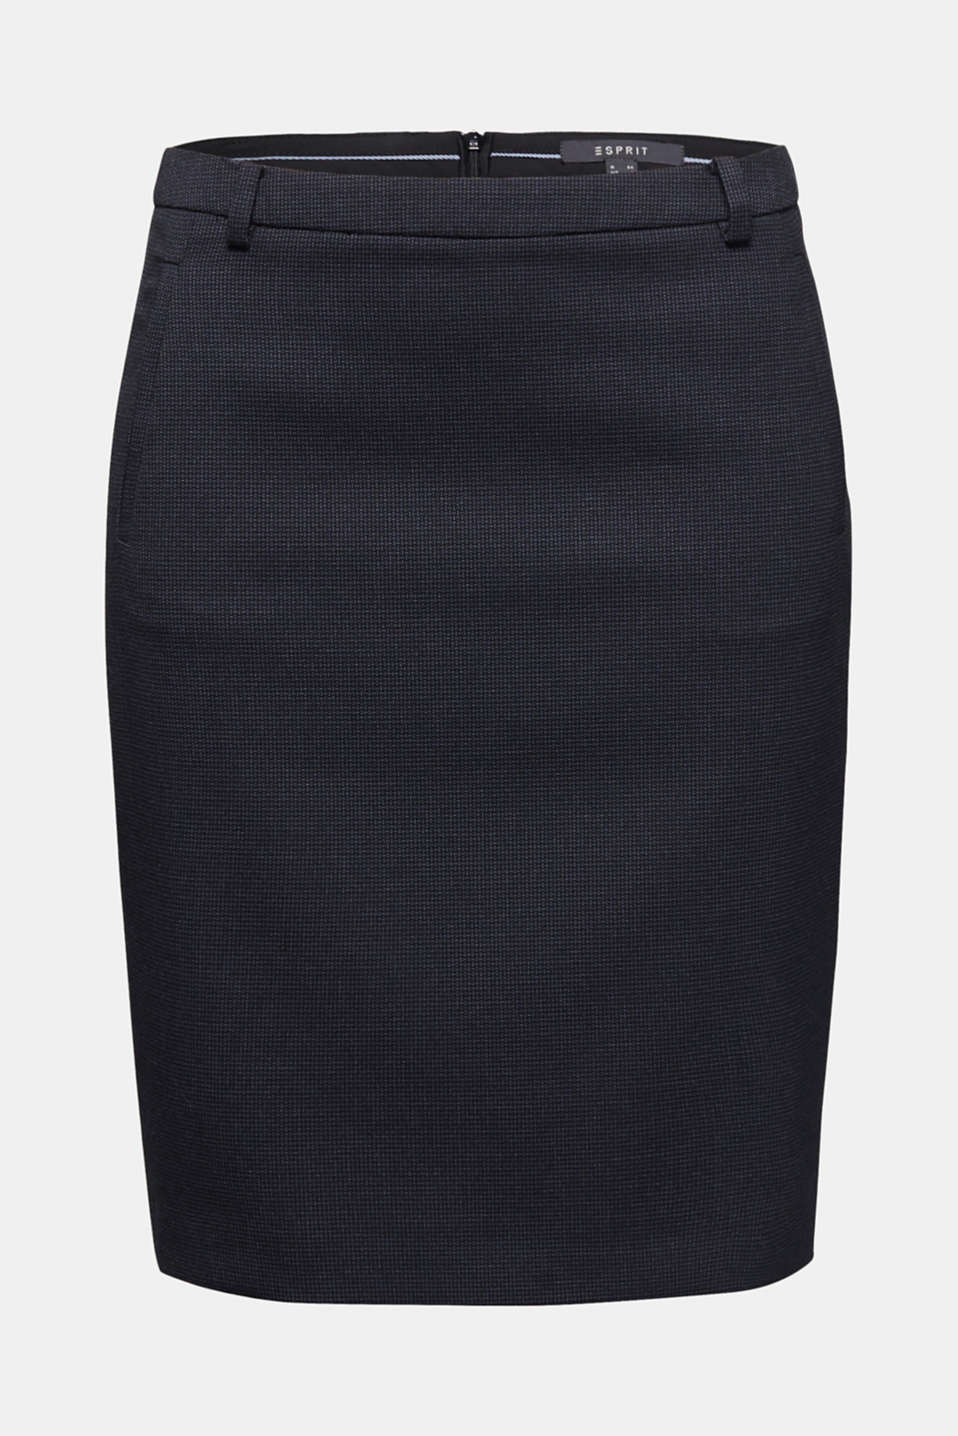 Jacquard stretch skirt, NAVY 5, detail image number 4